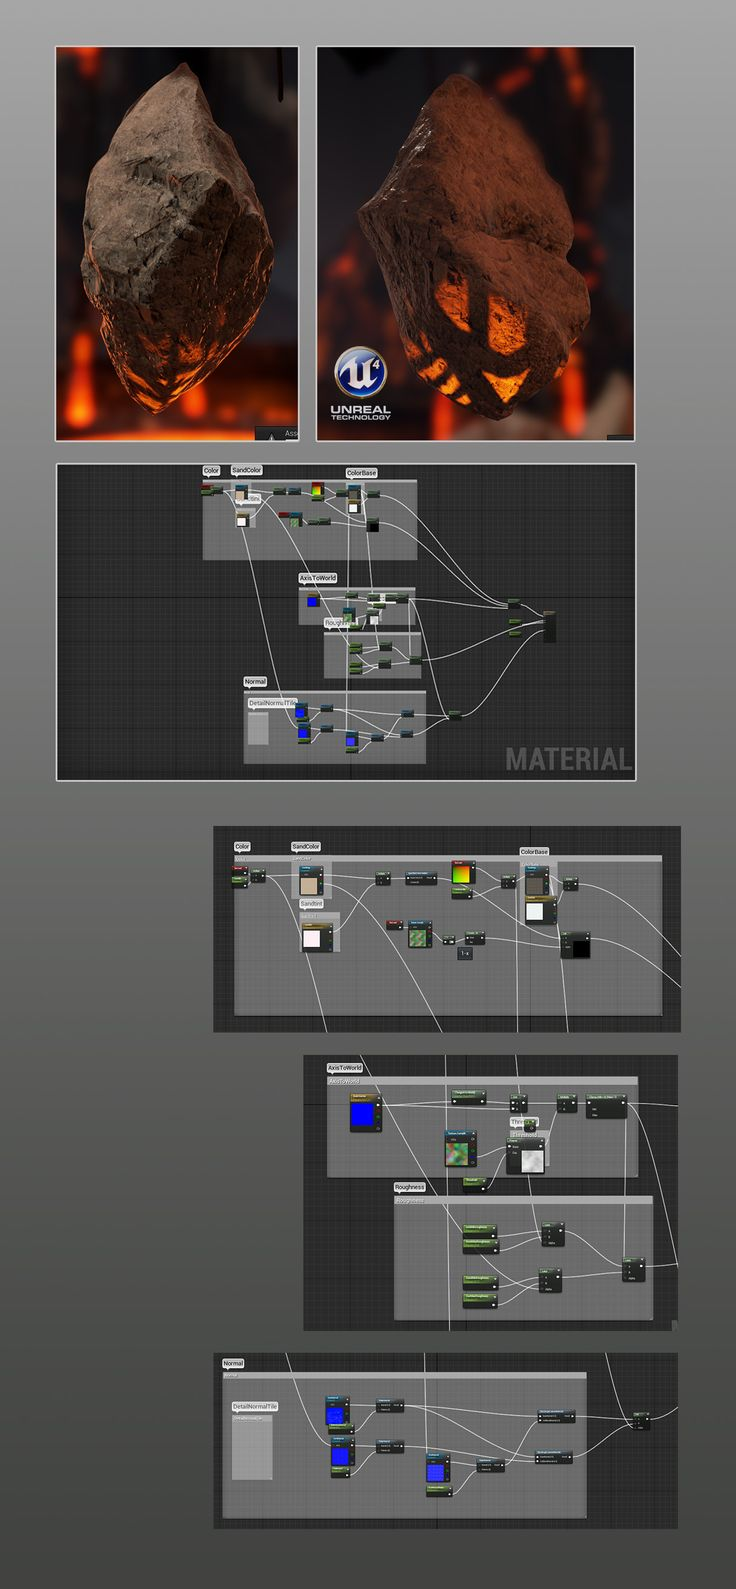 An example of the blueprint feature in Unreal Engine 4